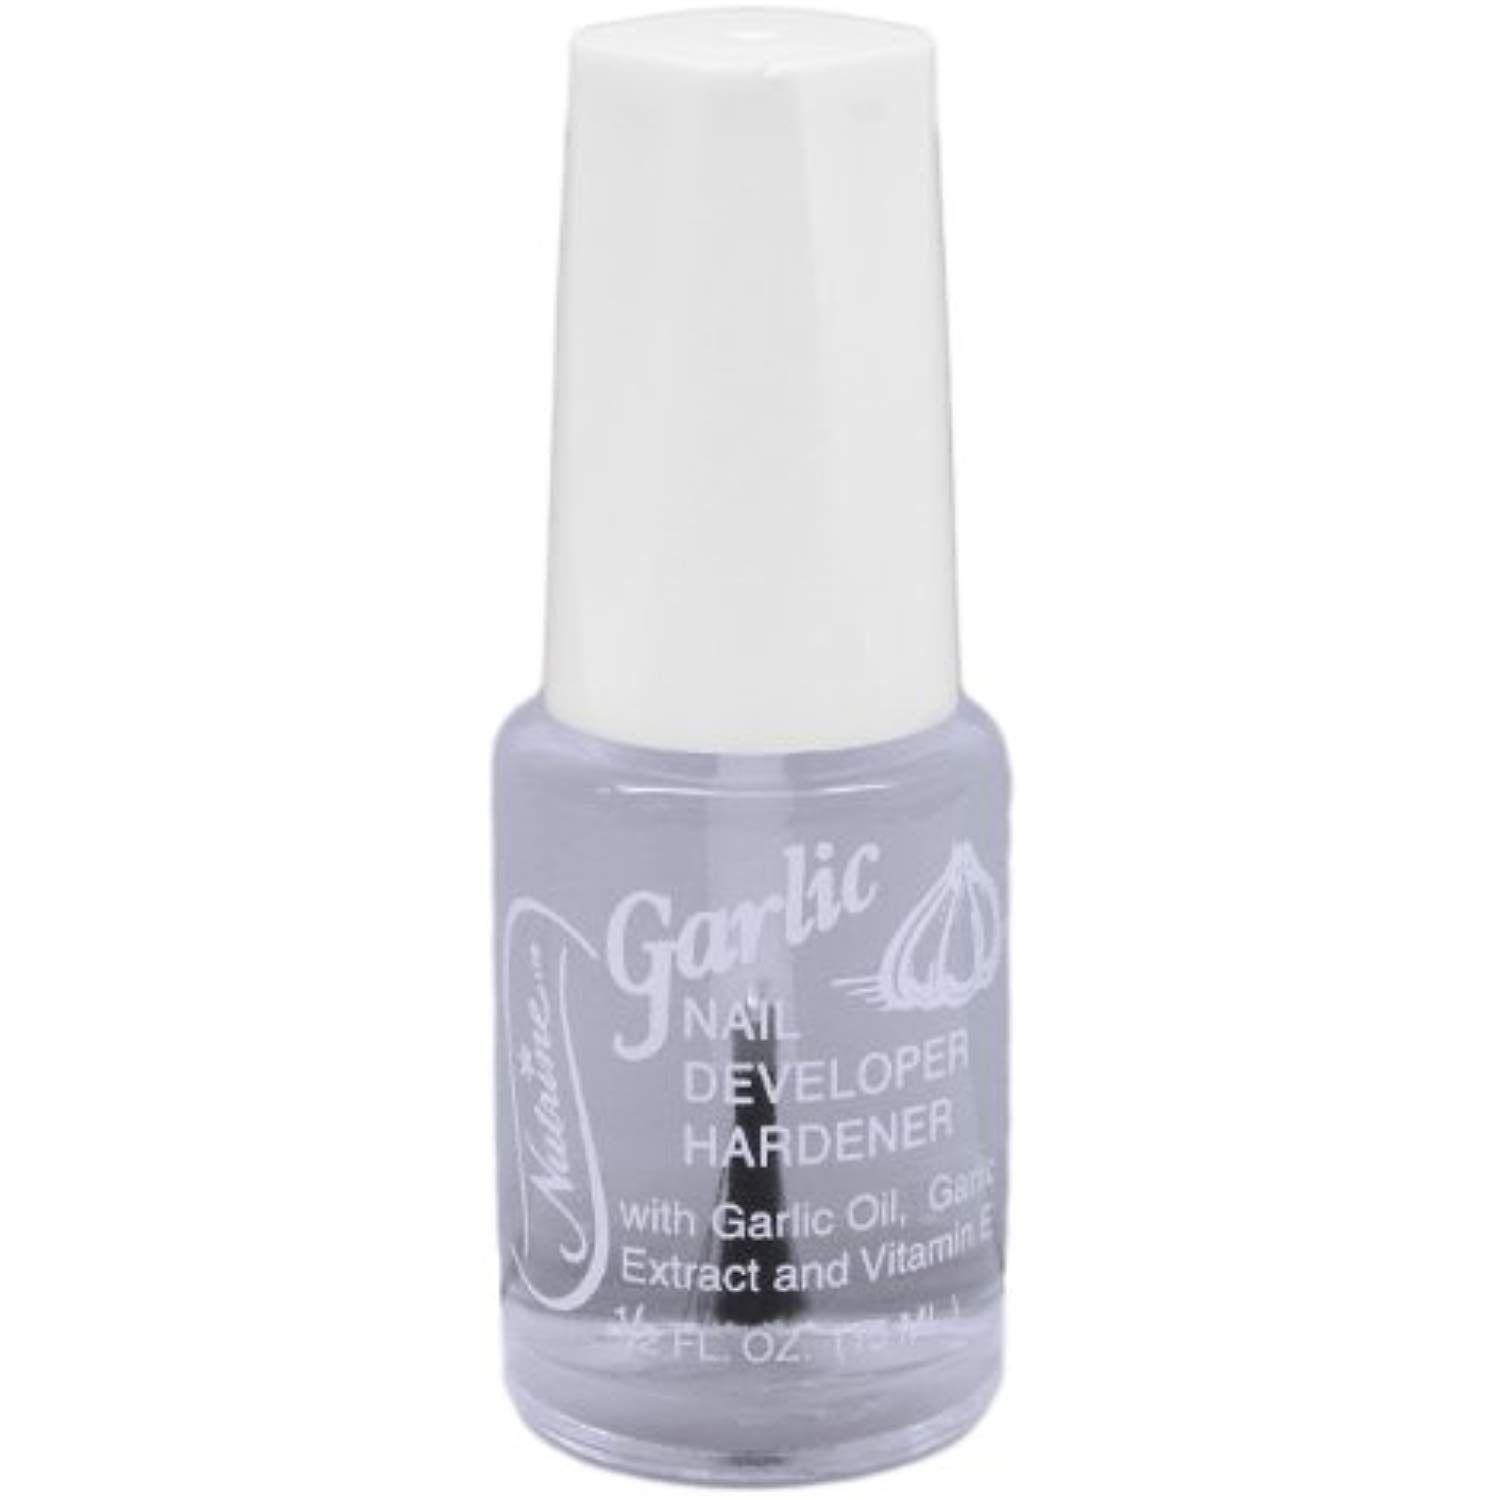 Nutrine Garlic Nail Developer Hardener 1 2oz Details Can Be Found By Clicking On The Image This Is An Affiliate Li Nails Plus High Quality Nails Nail Care